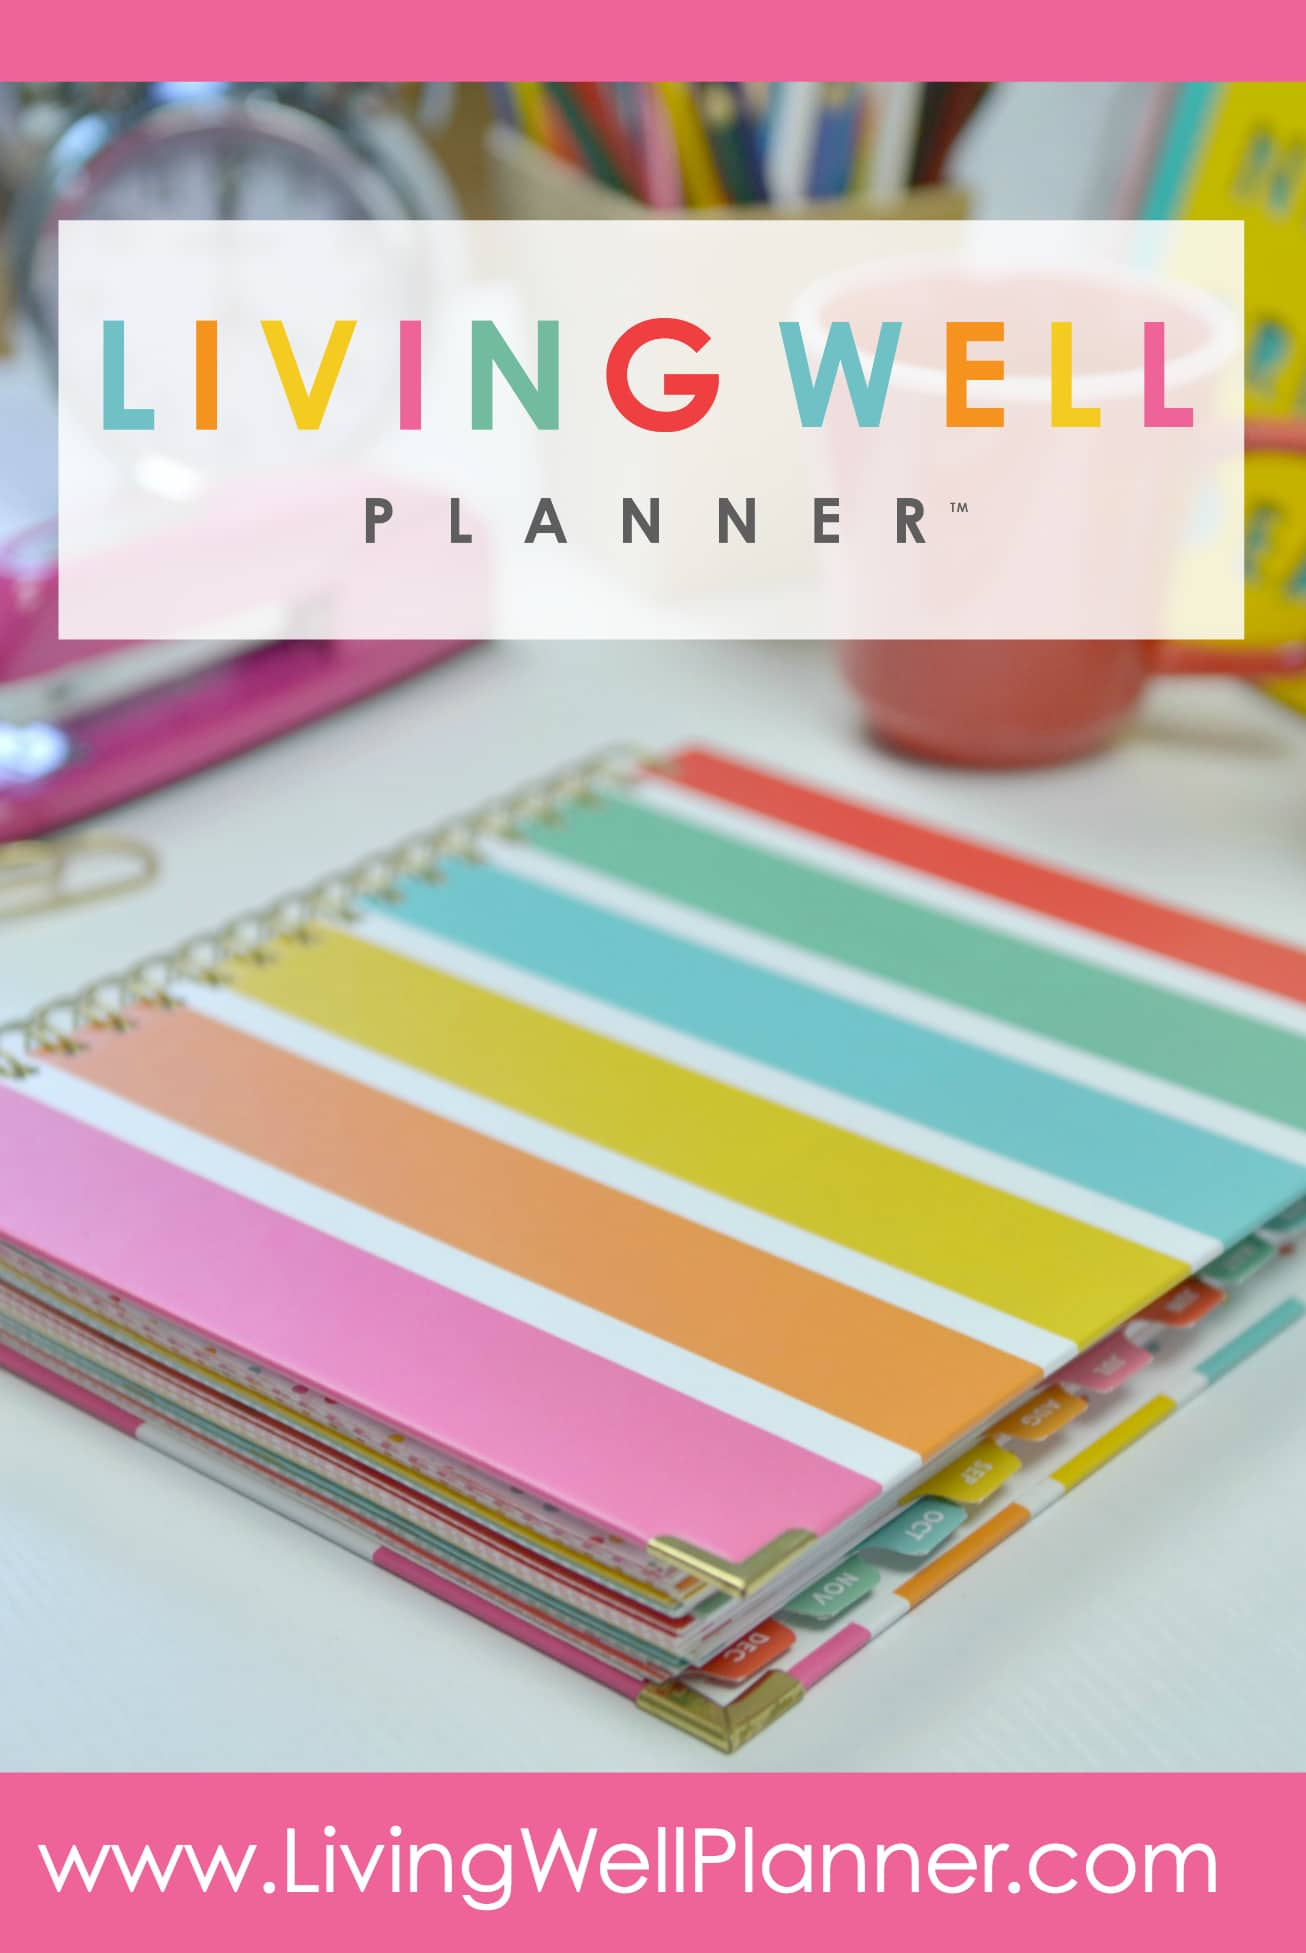 Living Well Planner Vertical With Graphic